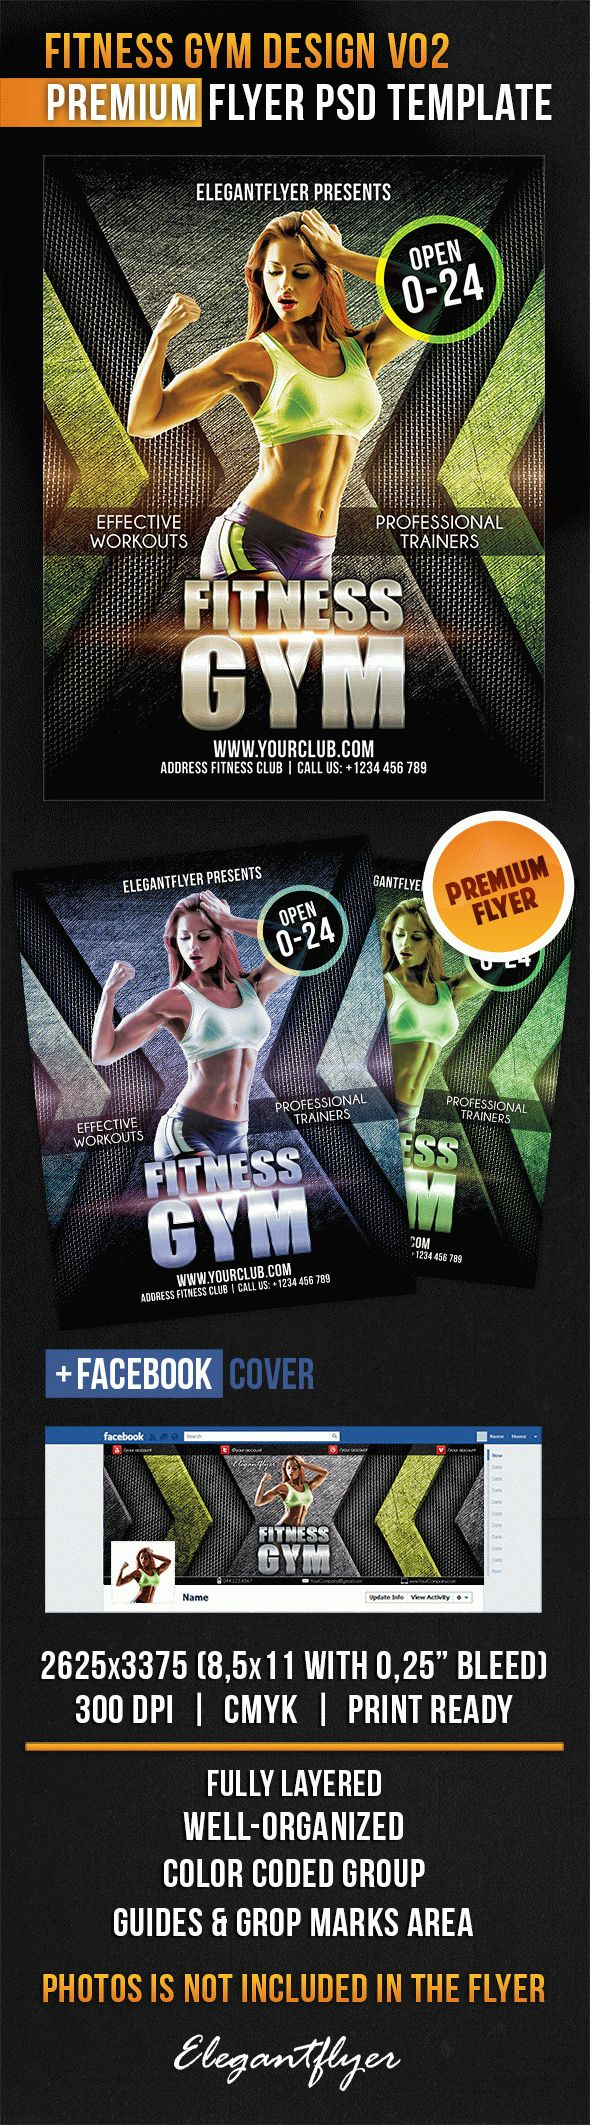 Fitness Gym Design V02 – Flyer PSD Template + Facebook Cover